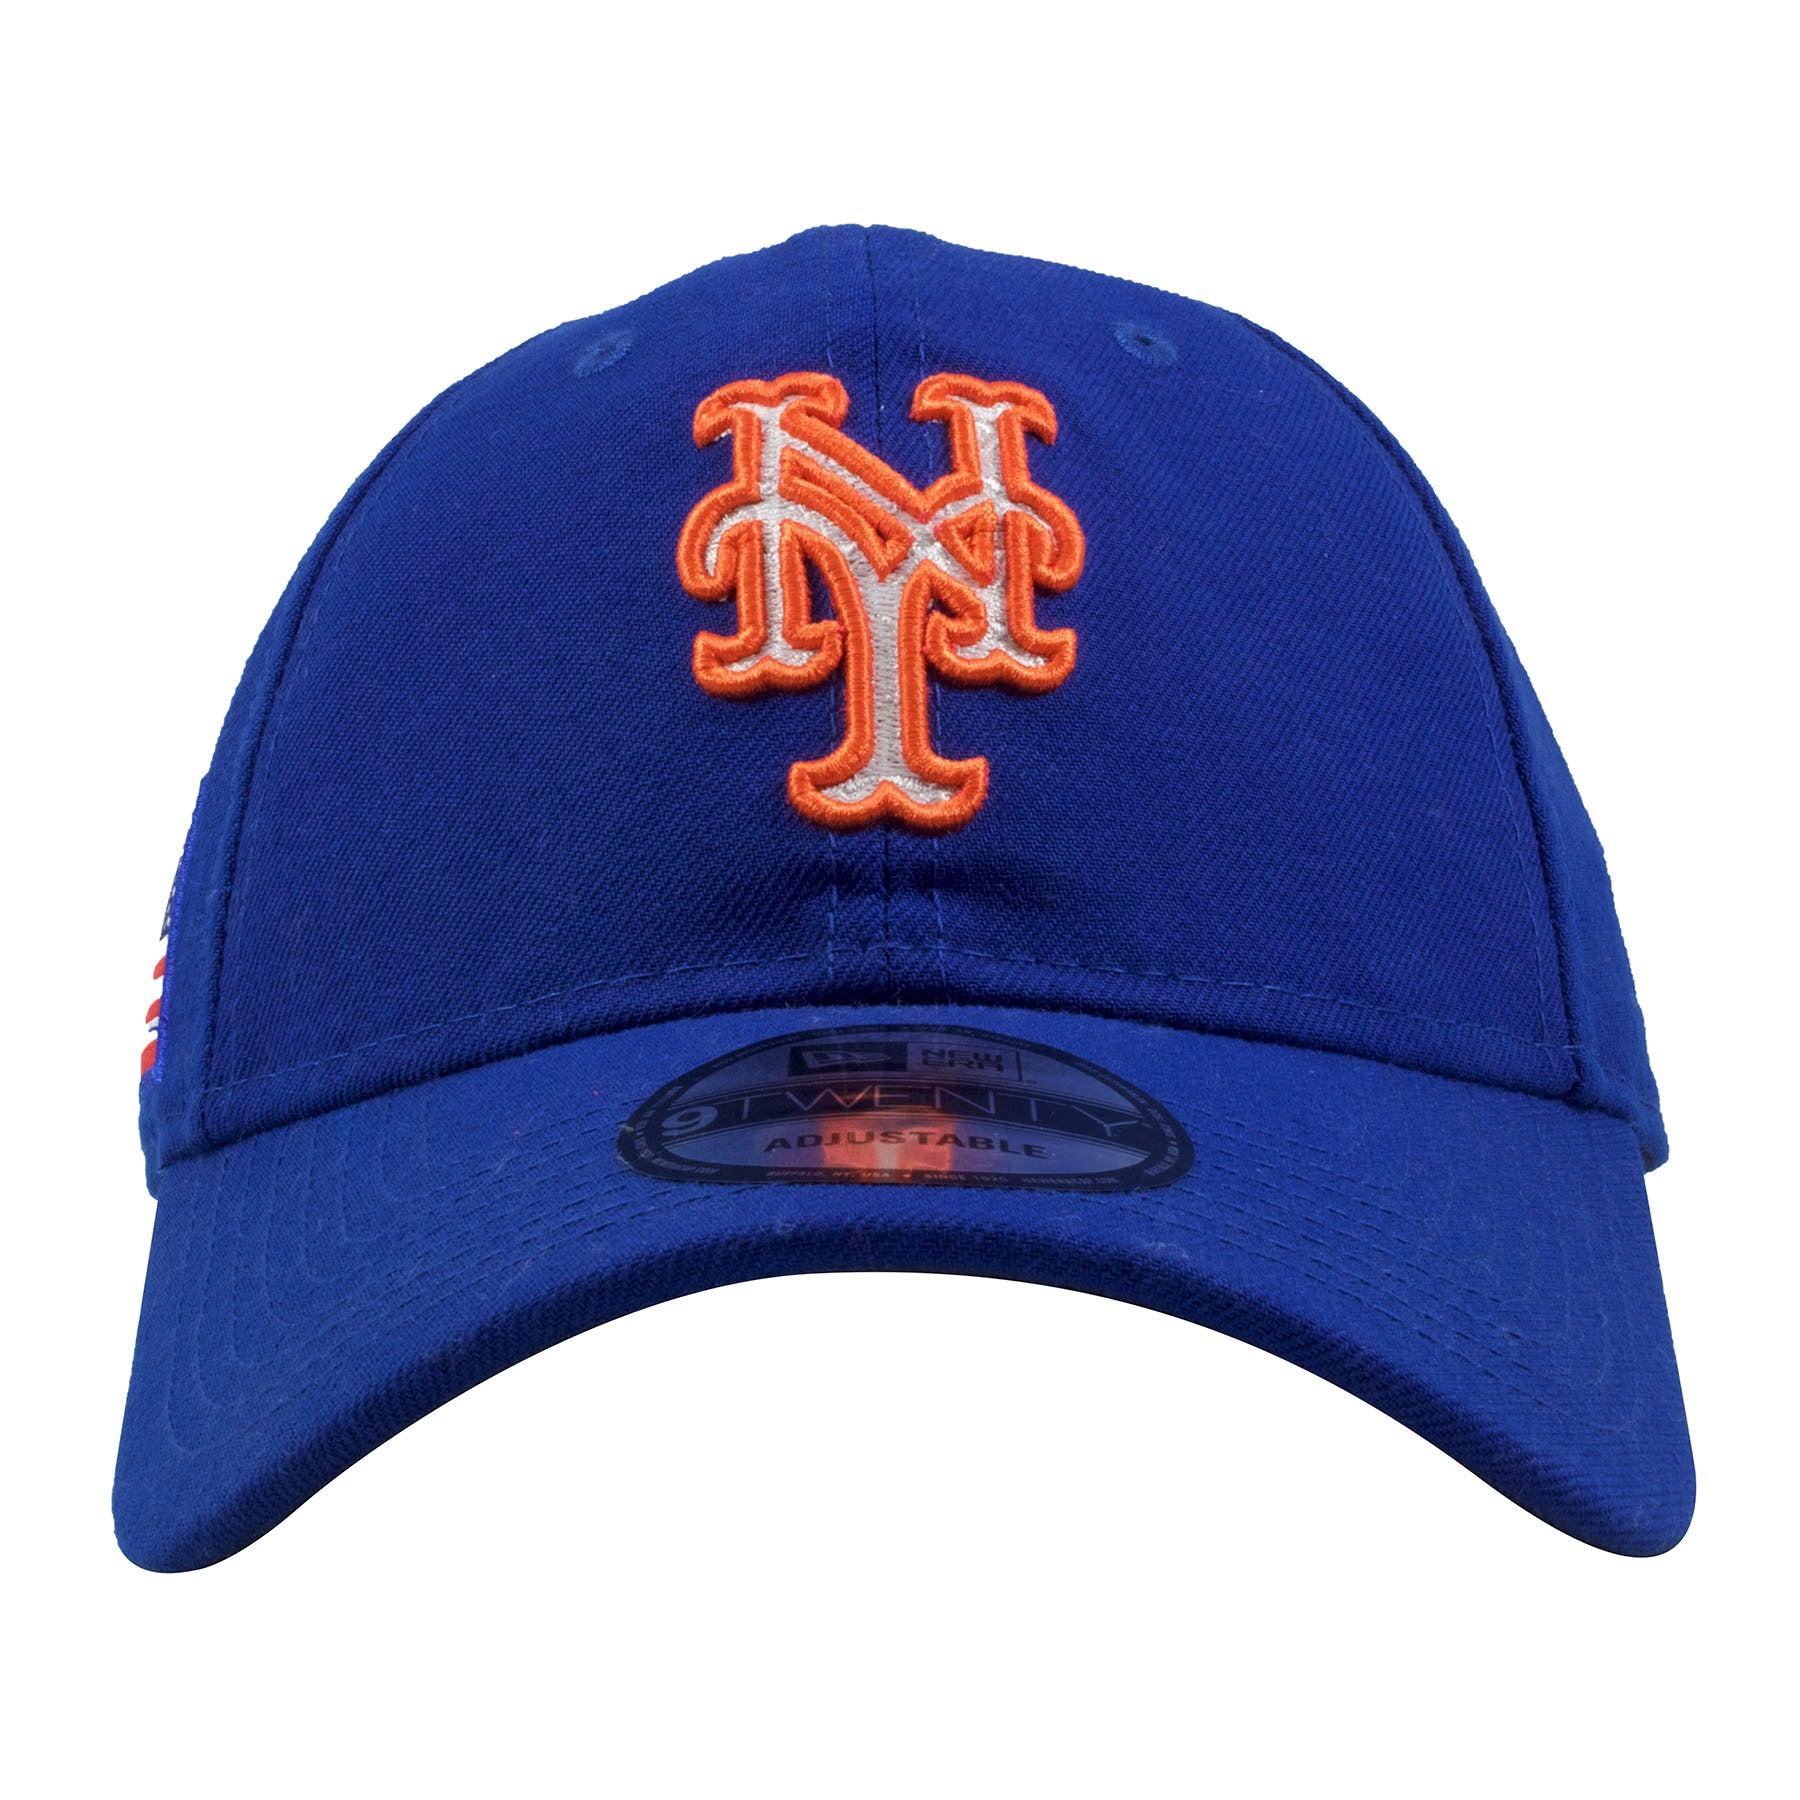 c8418c24db2 Embroidered on the front of the New York Mets USA Patch dad hat is the Mets